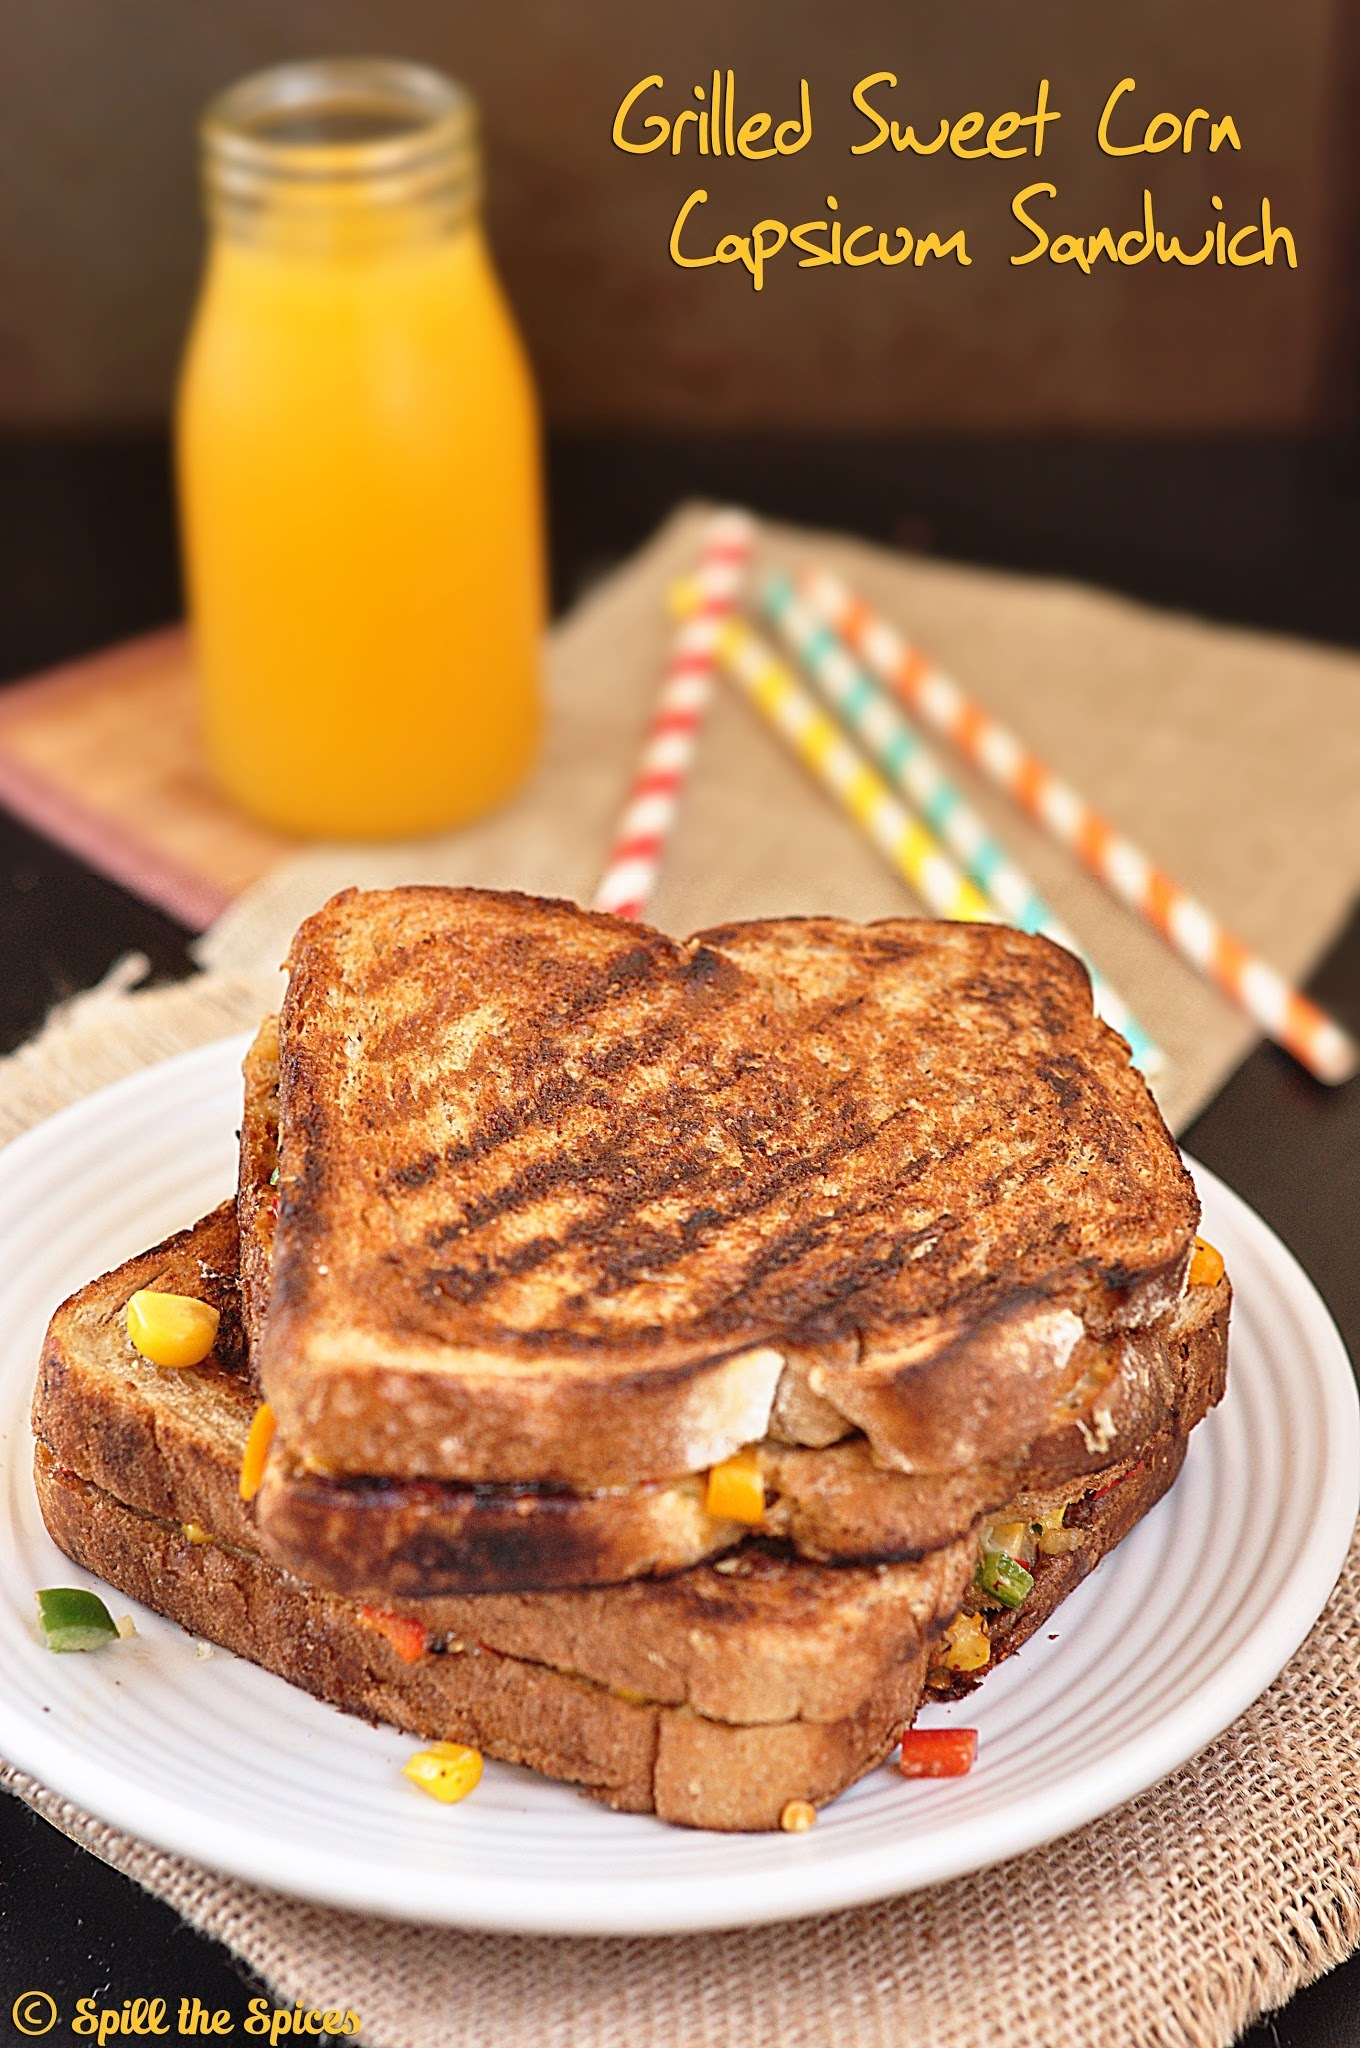 Grilled Sweet Corn Capsicum Sandwich